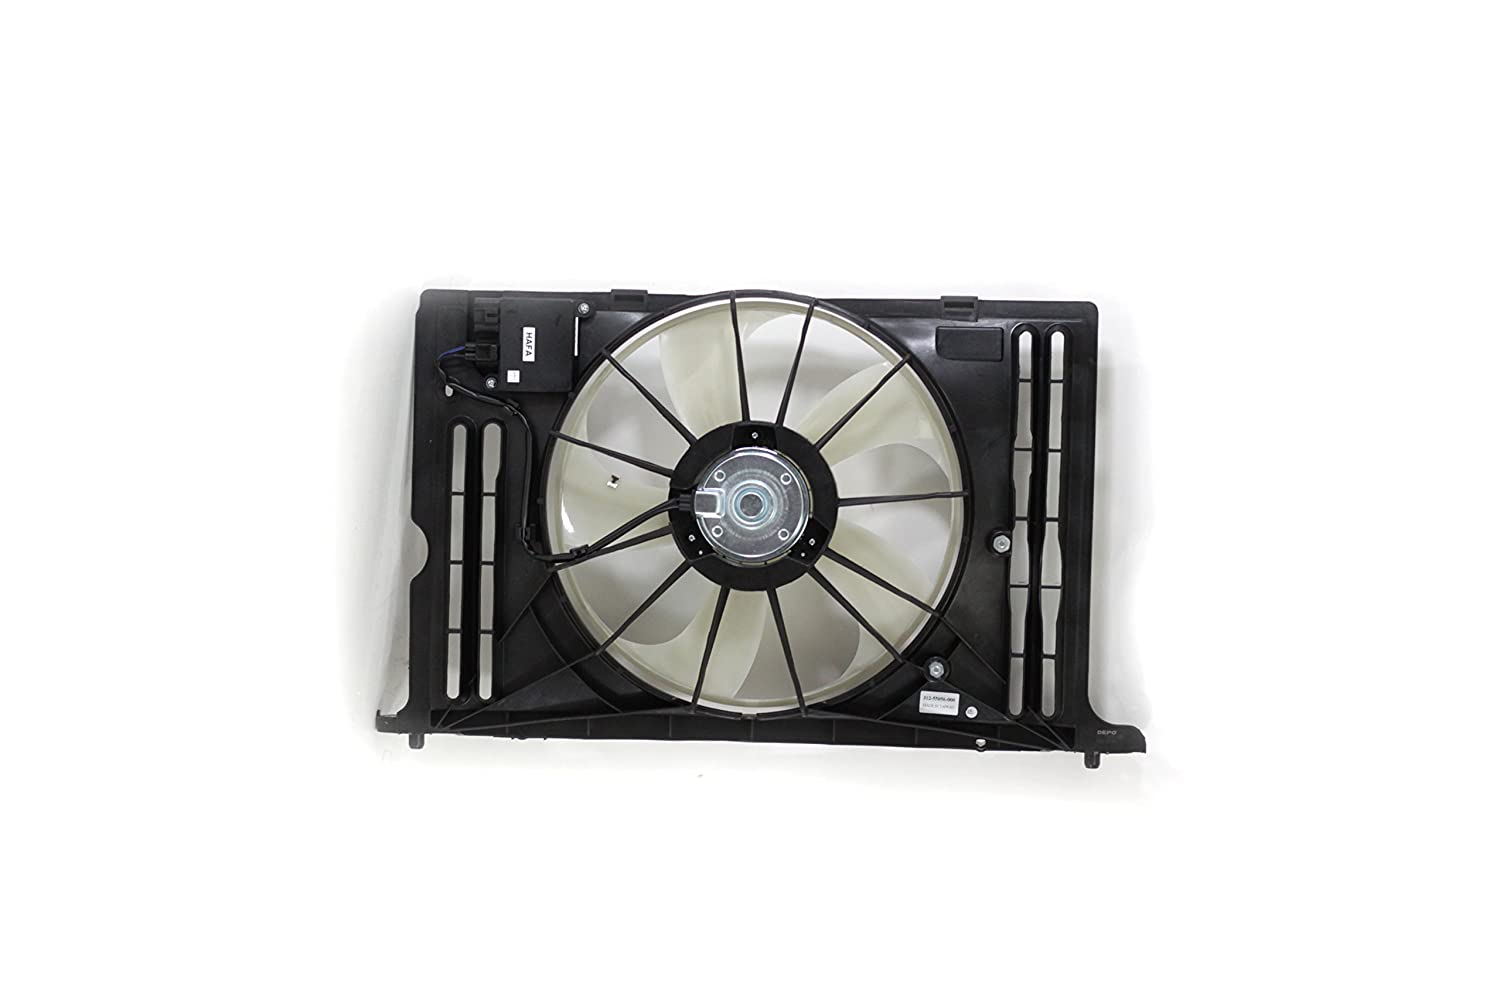 Dual Radiator and Condenser Fan Assembly - Cooling Direct Fit/For 163630T020 09-13 Toyota Corolla Matrix 1.8 Liter With Module